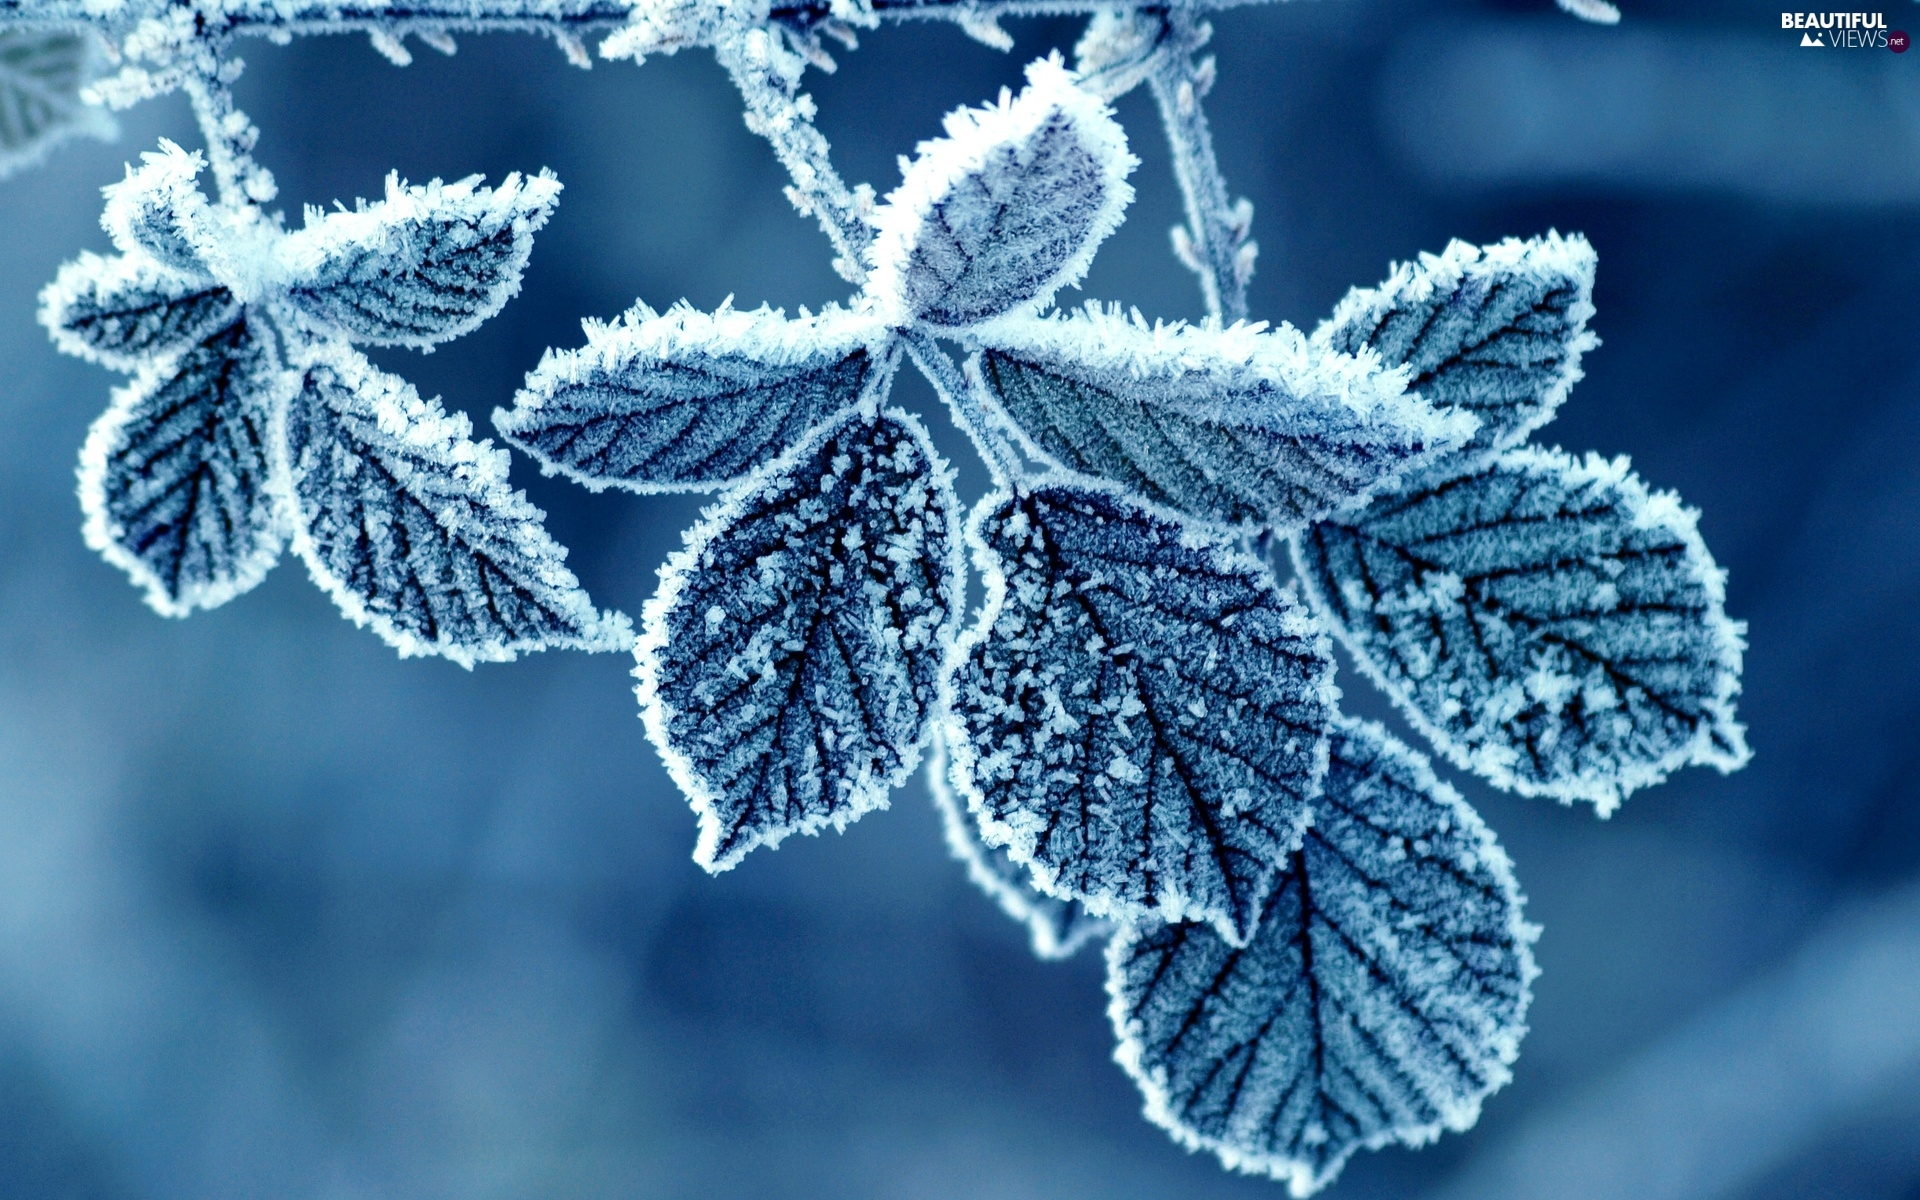 frost, Leaf, Covered